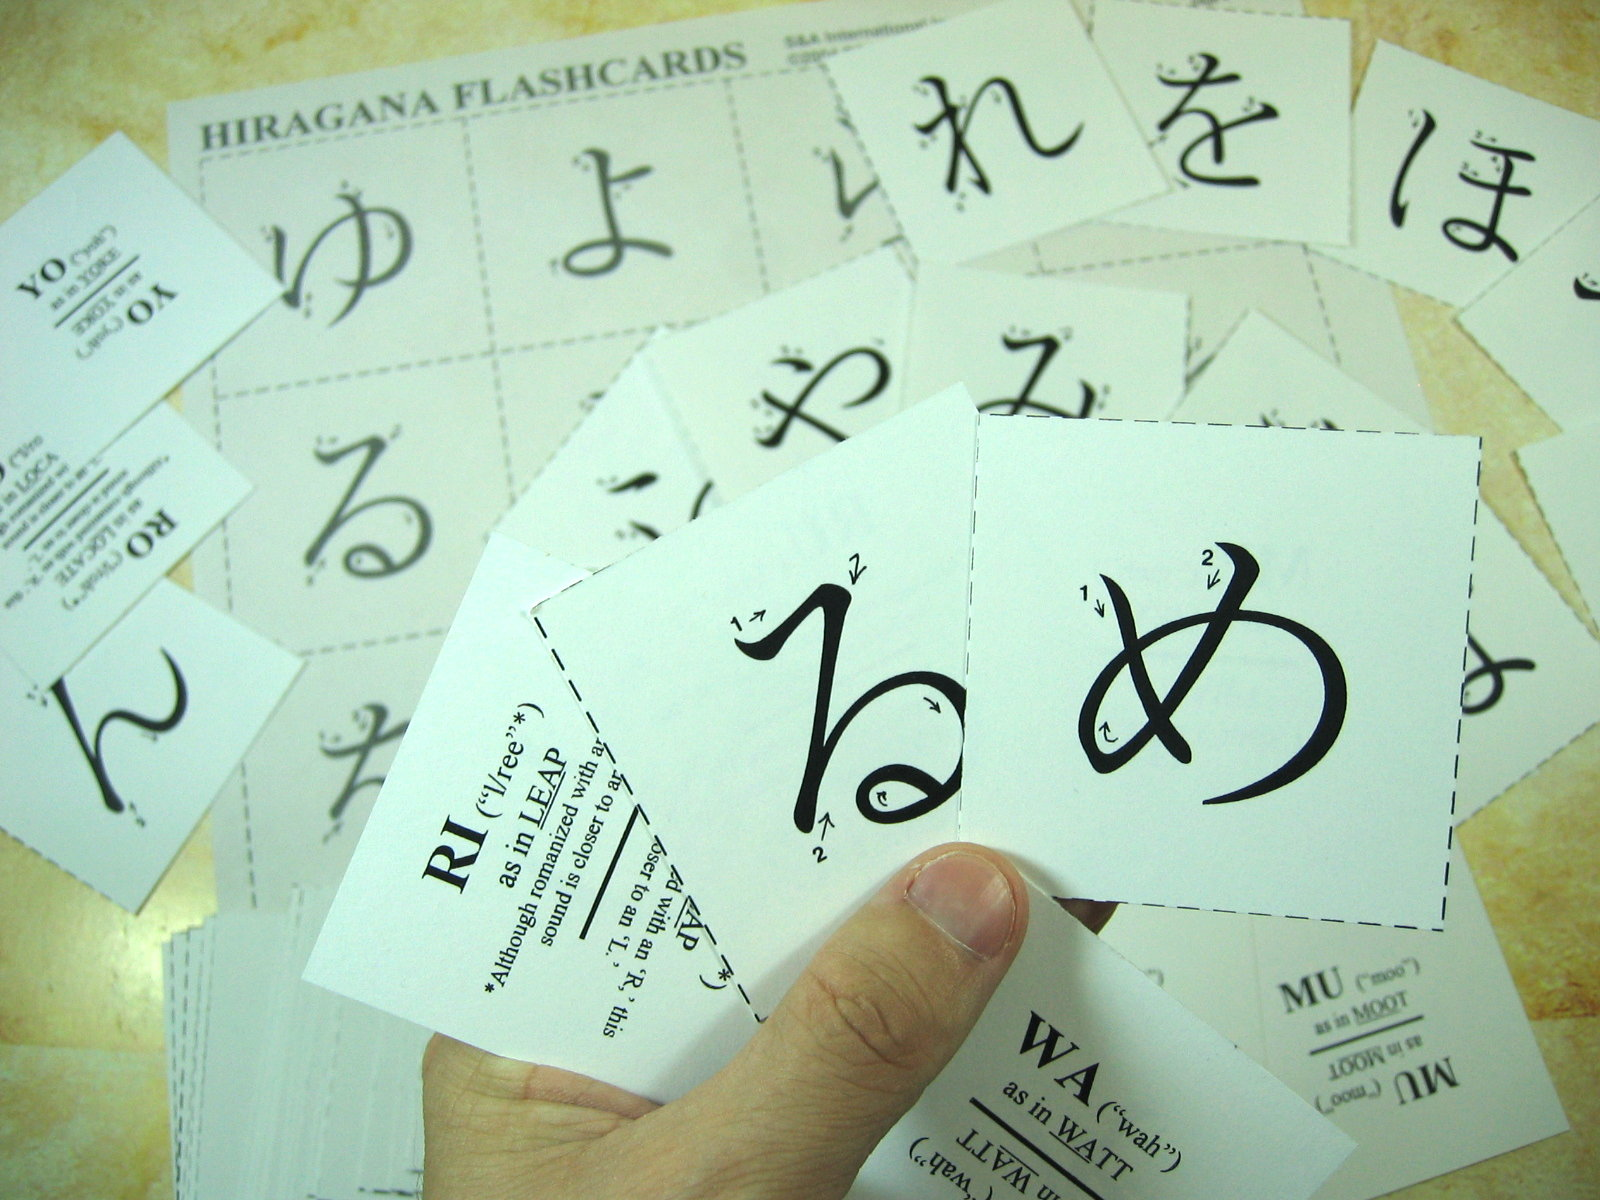 Hiragana And Katakana Writing Practice Sheets